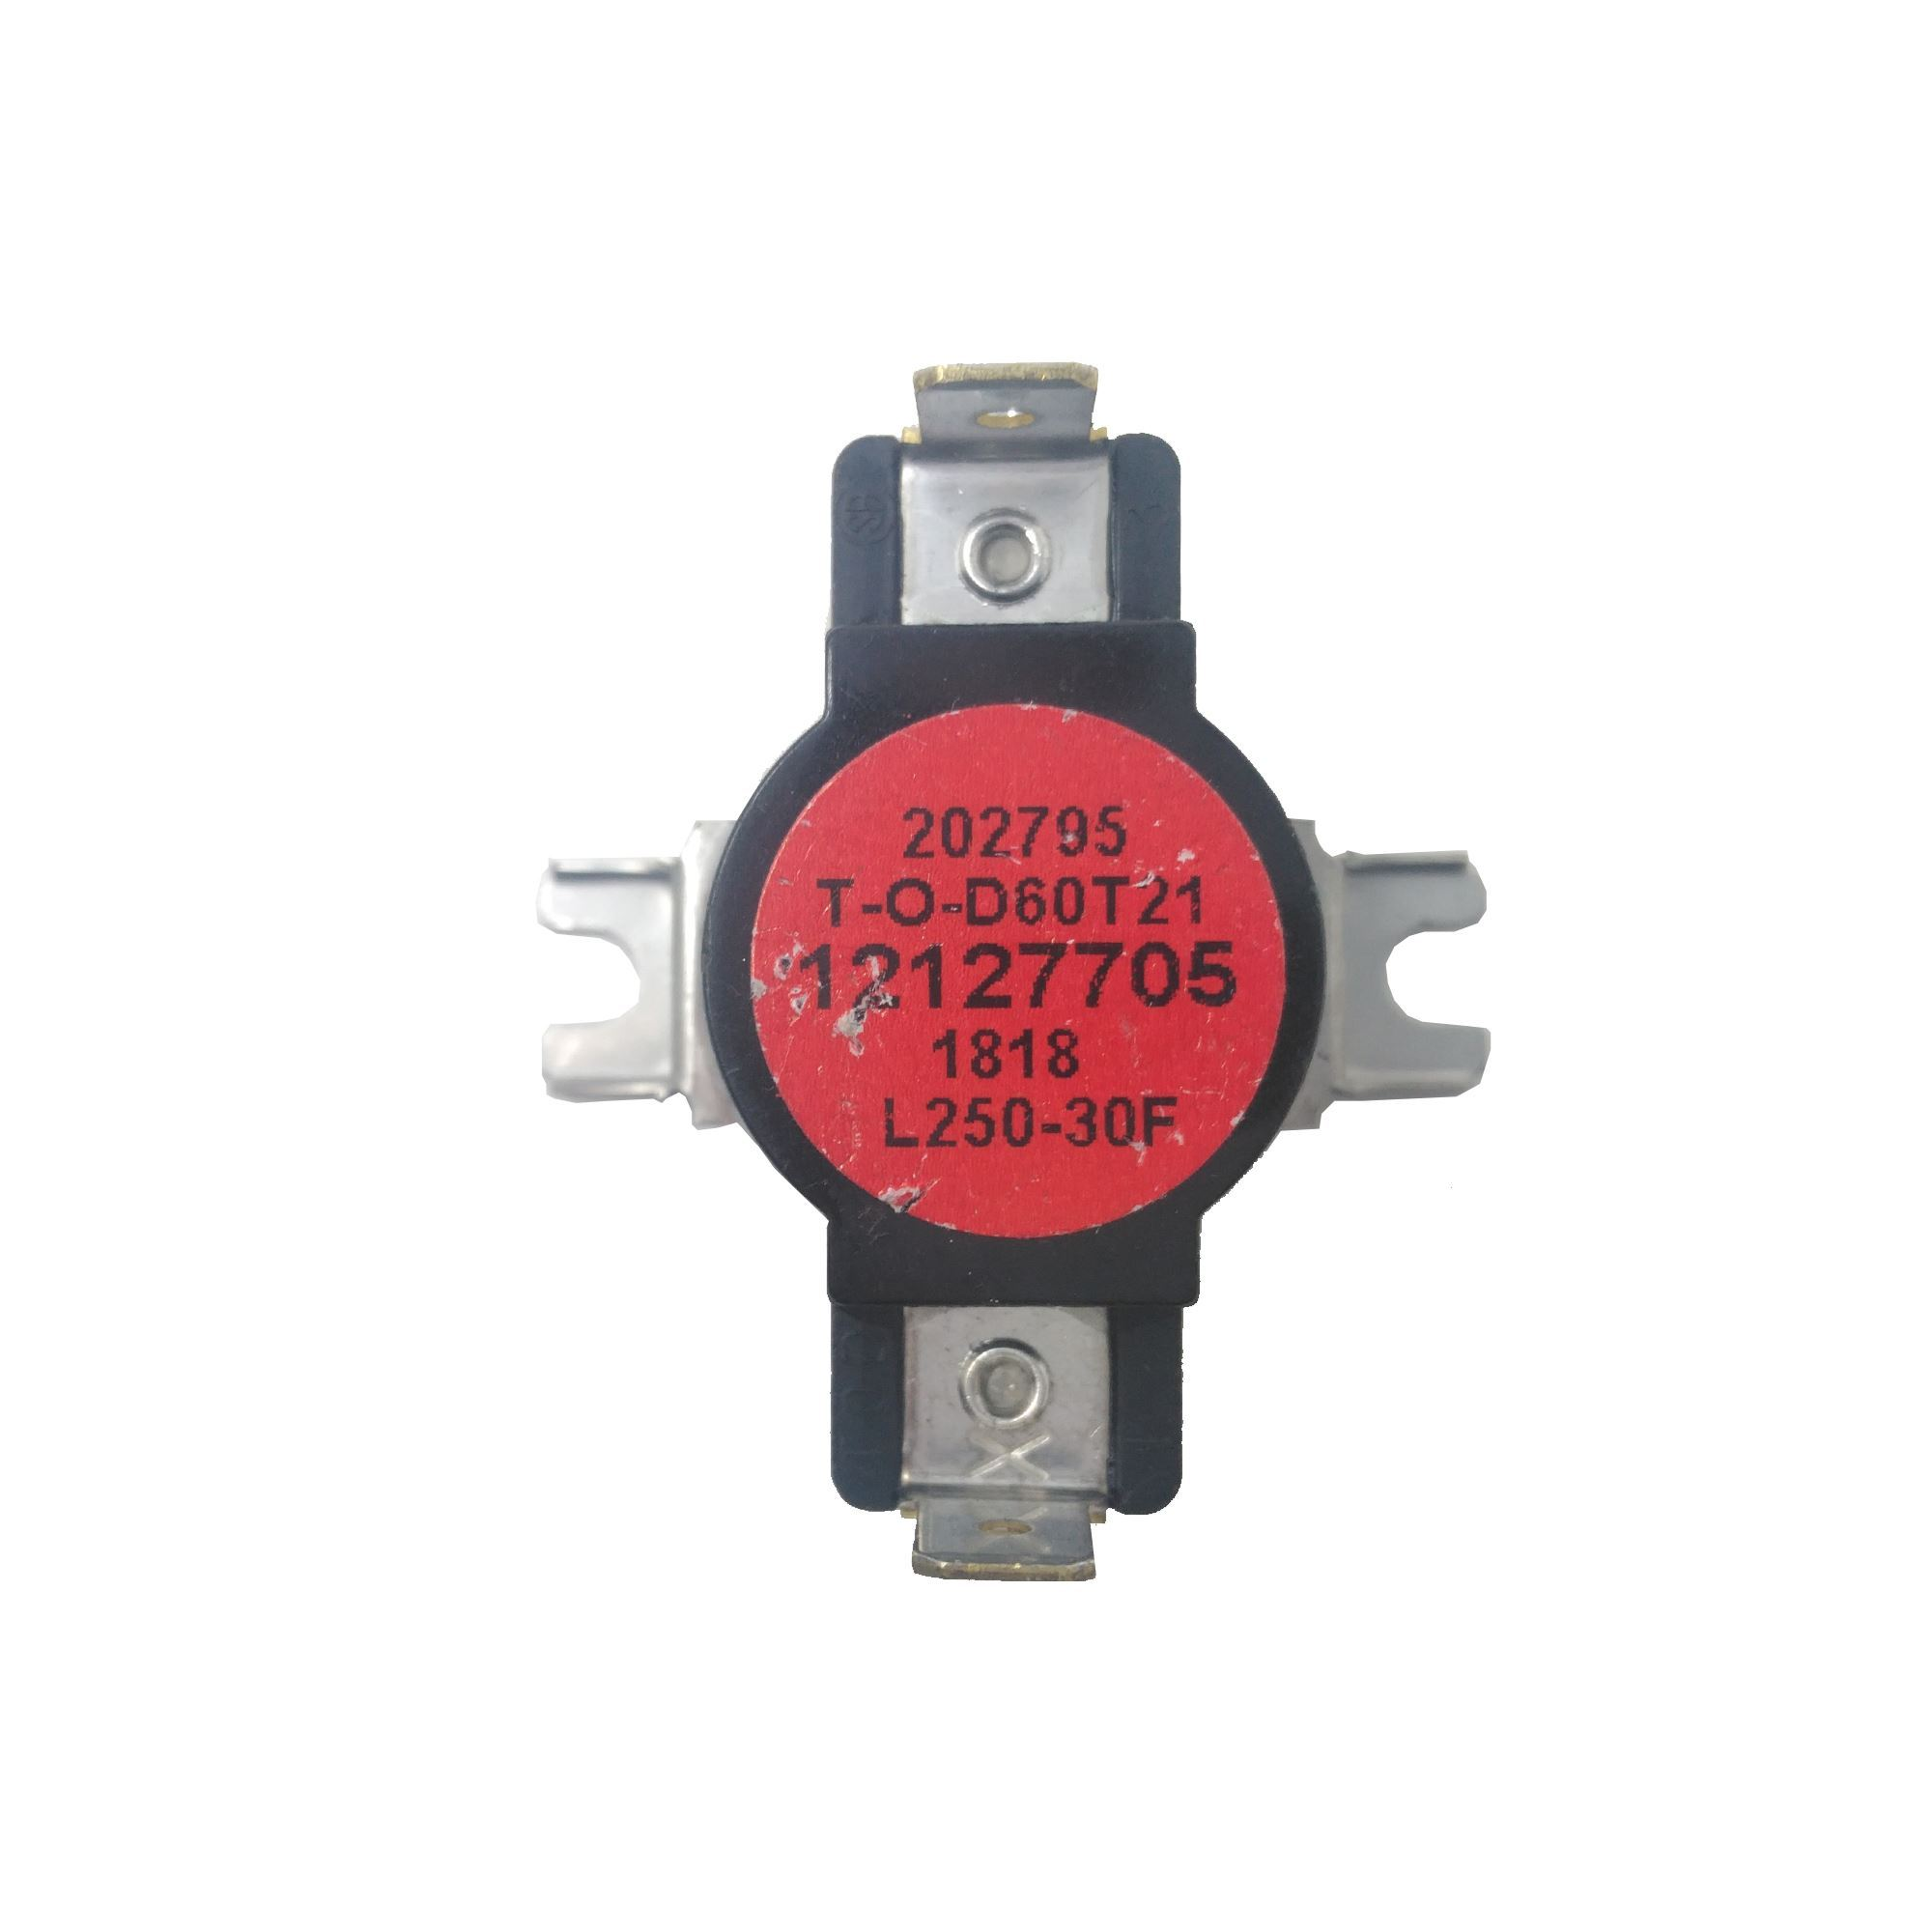 Whitfield & Lennox High Limit Snap Switch 250F, 12147705